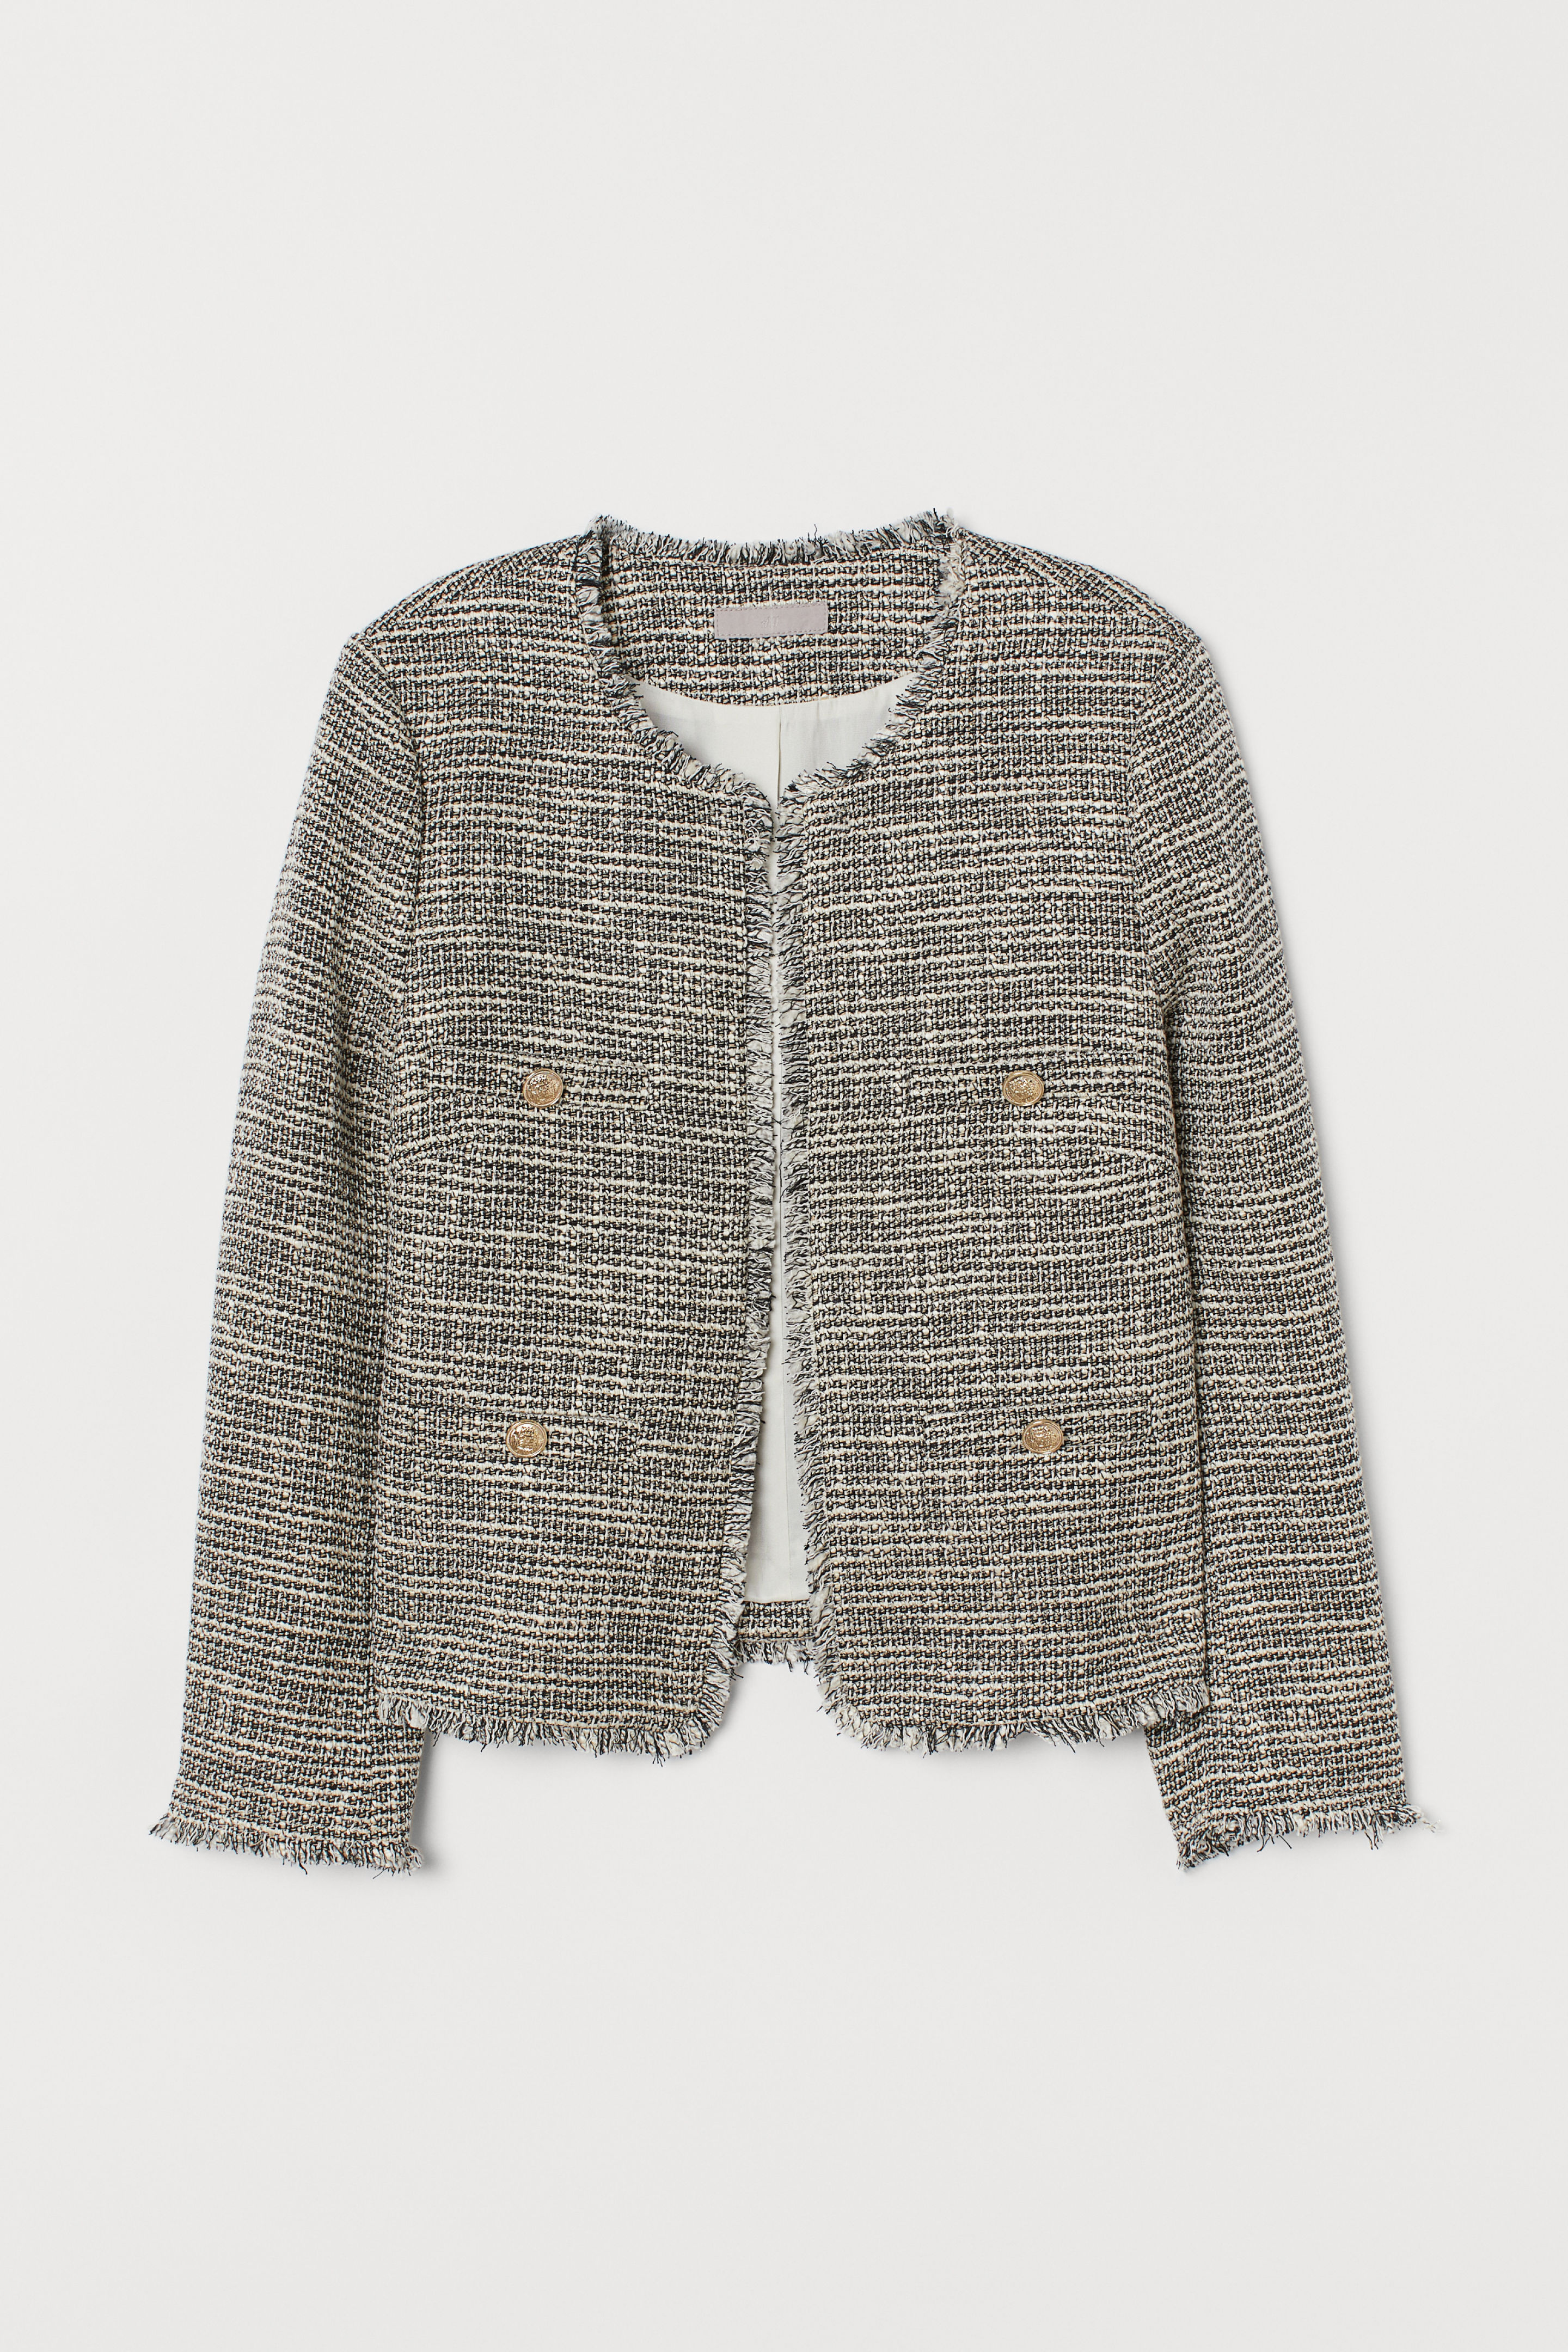 Textured Weave Jacket